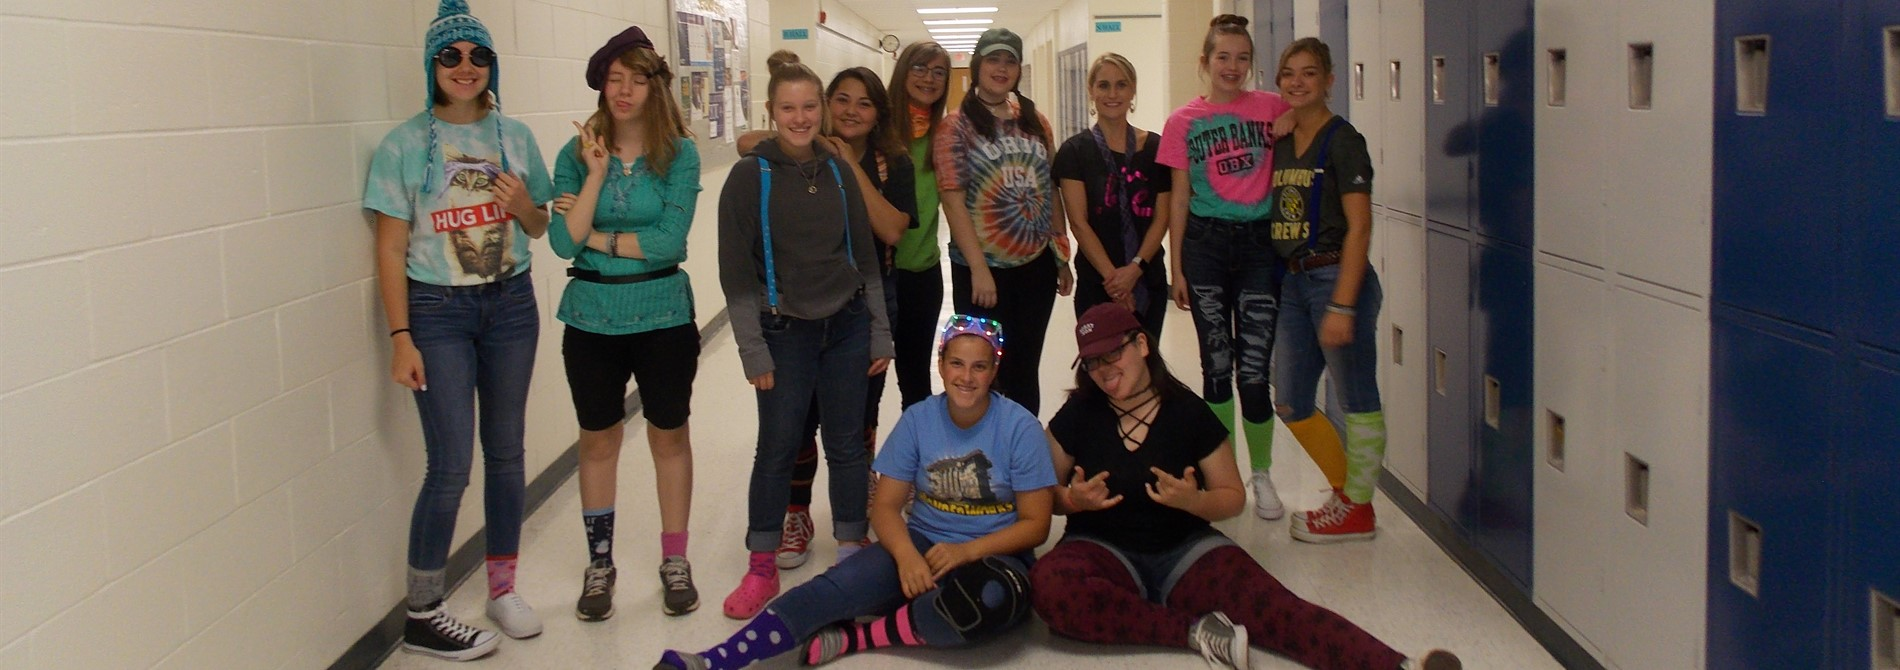 Spirit Week - Wacky Day